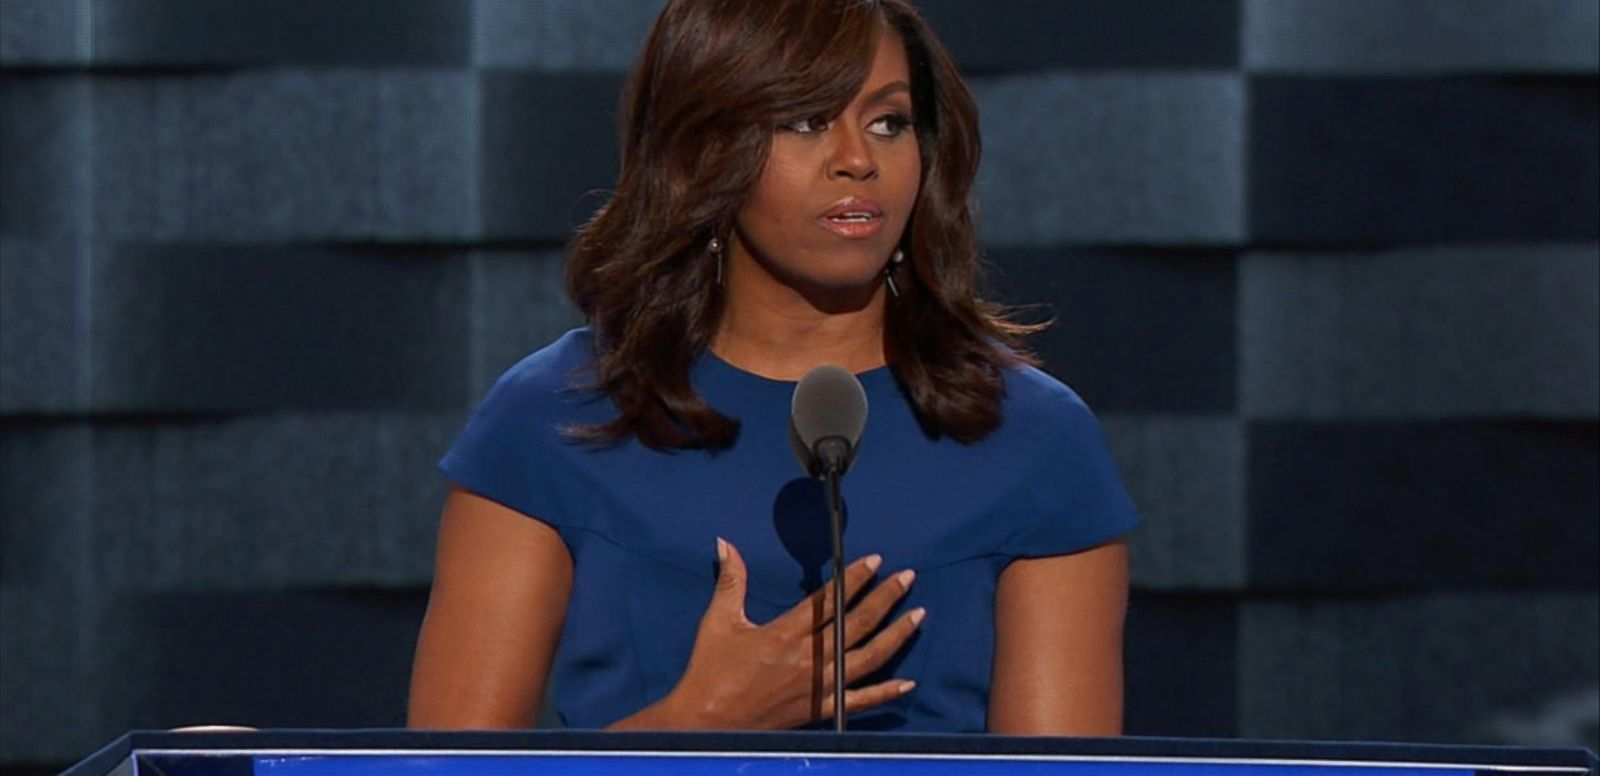 VIDEO: Michelle Obama Gives Rousing DNC Speech